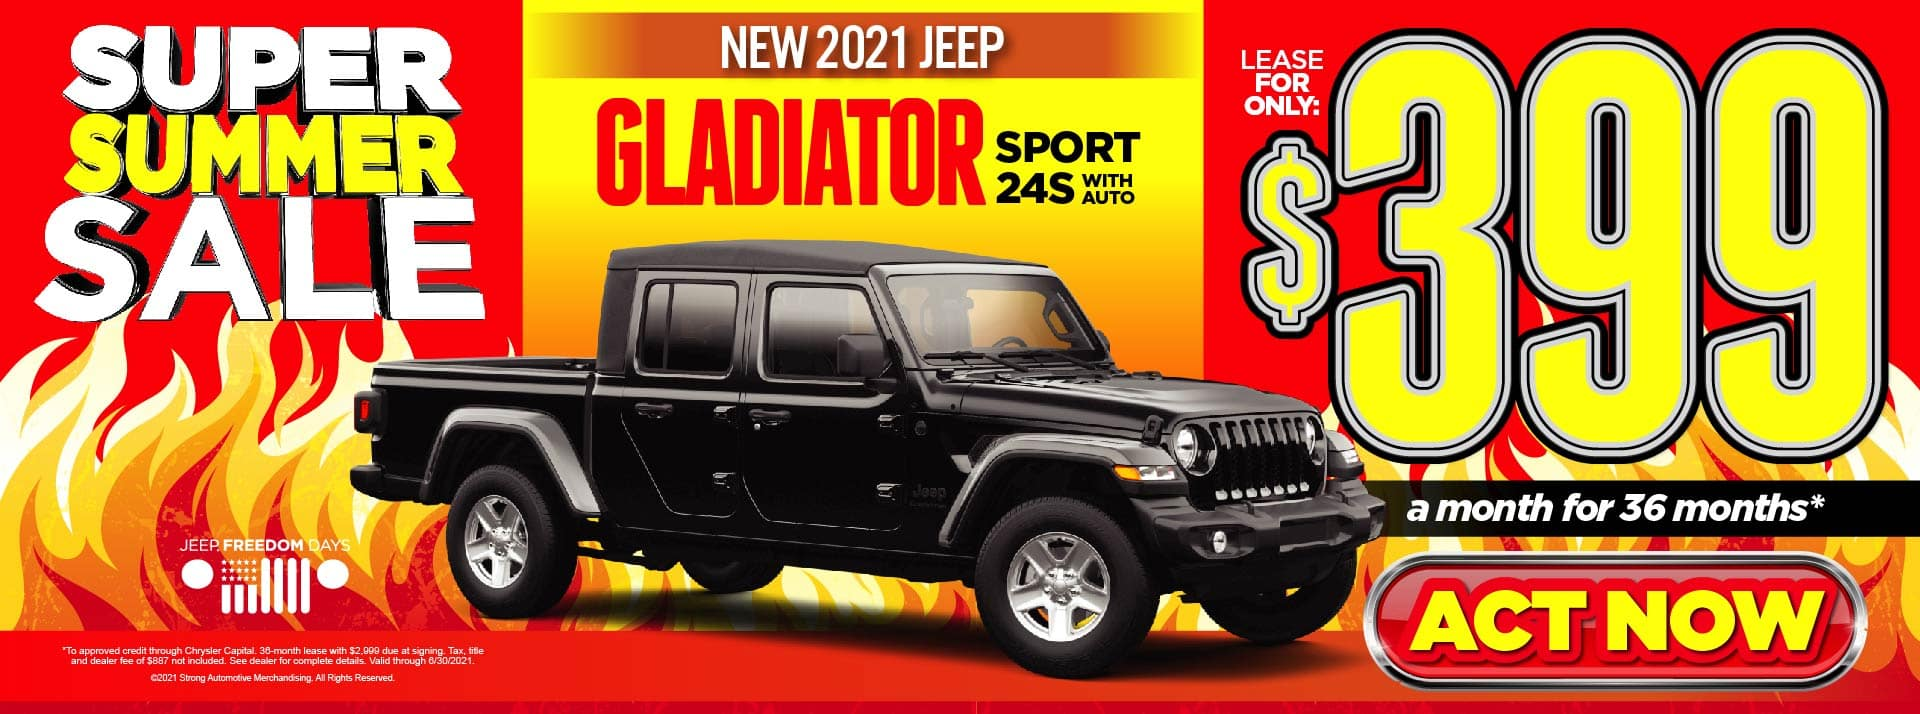 NEW 2021 JEEP GLADIATOR LEASE FOR $399/MO* ACT NOW